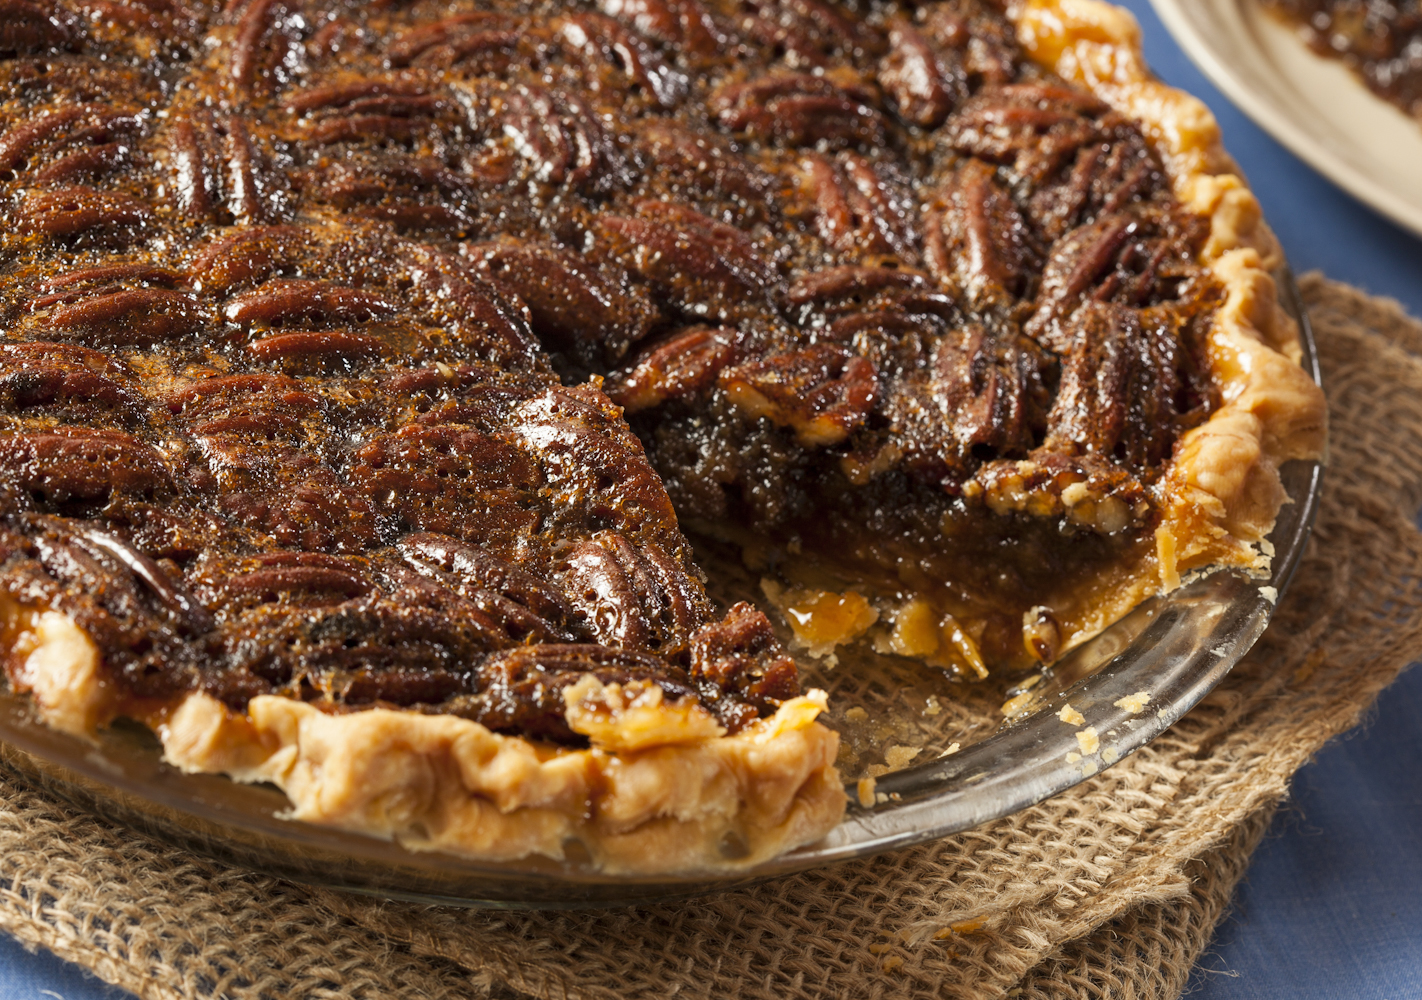 Crunchy on the outside and gooey on the inside make the pecan a delectable dessert